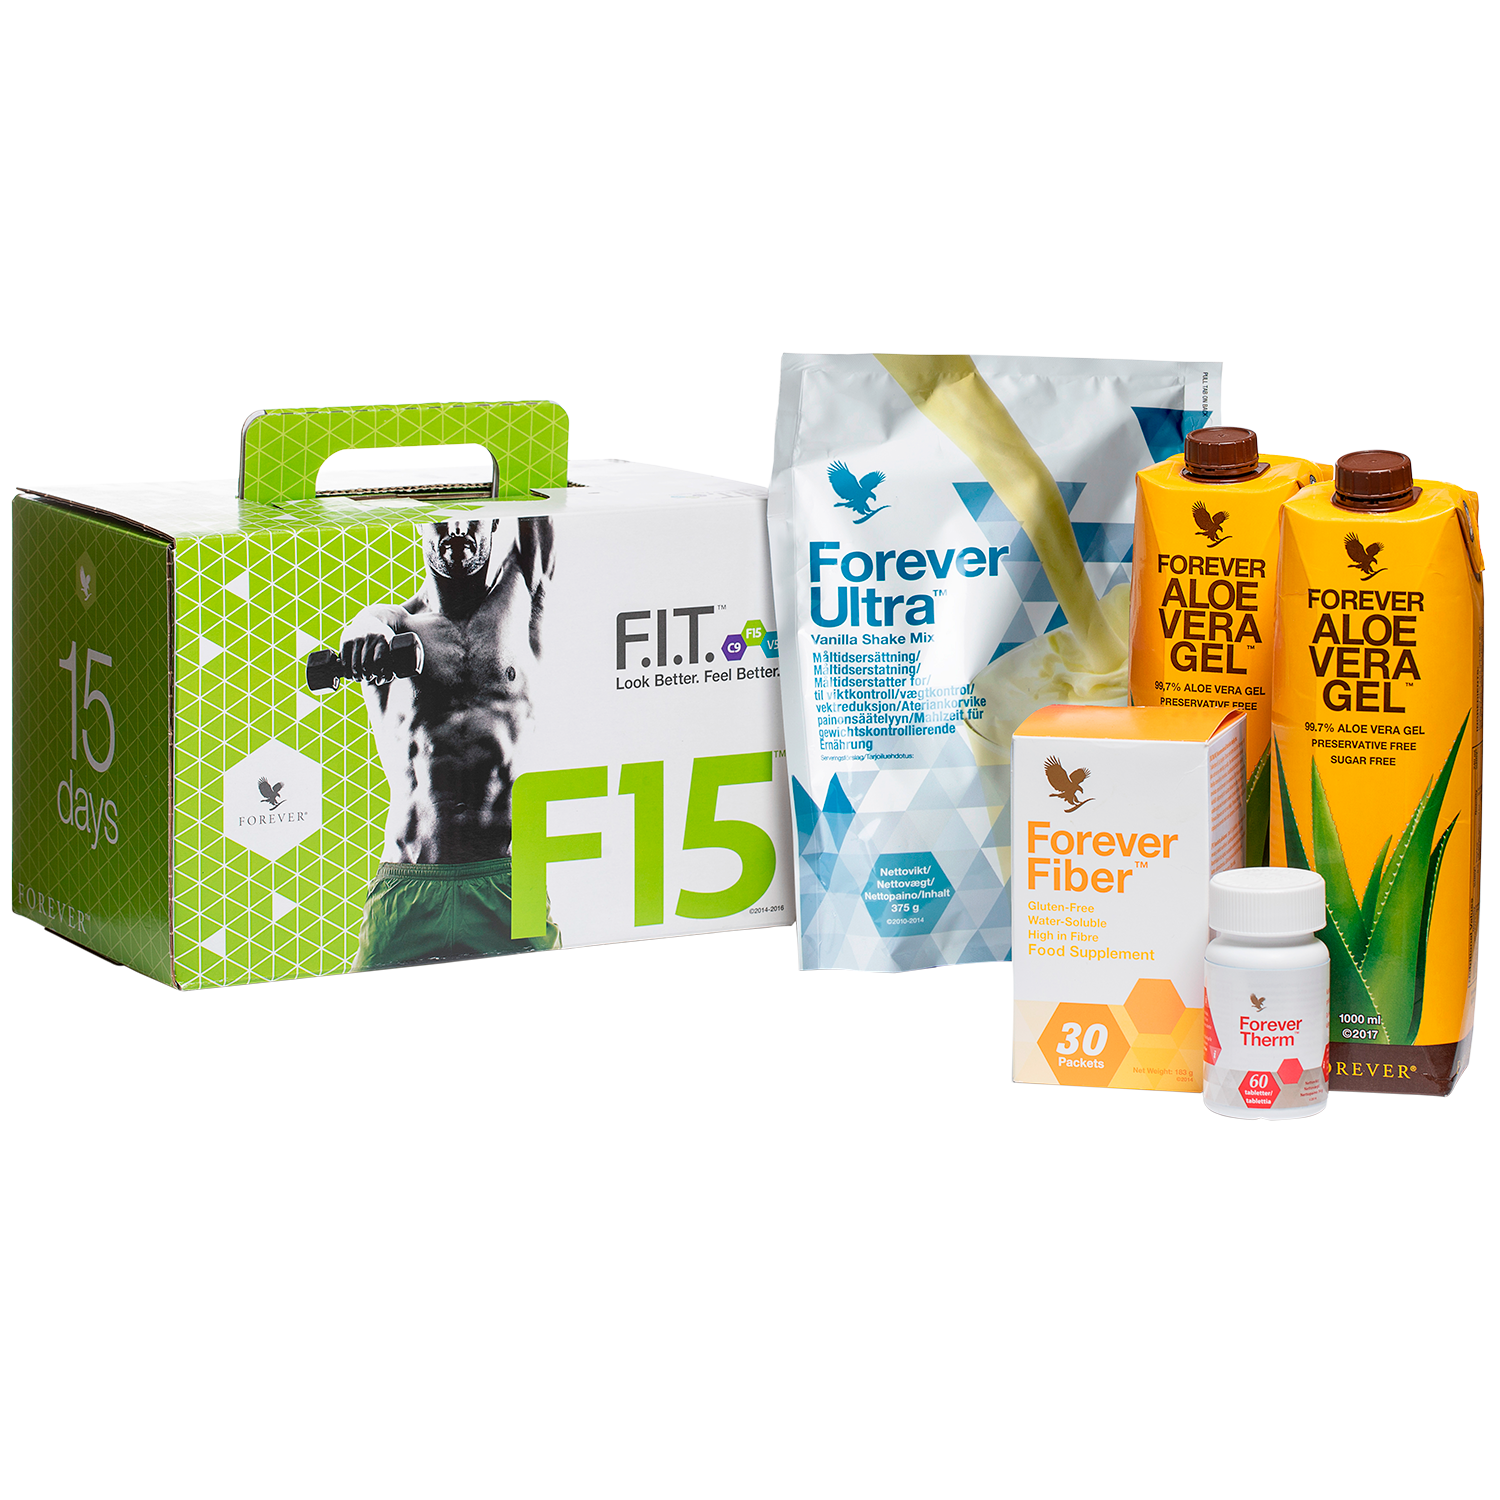 F15 is 3 diet and training programmes that give you a manual and tools to improve your health, as well as Forever Ultra, Therm, Fiber and Aloe Vera Gel.